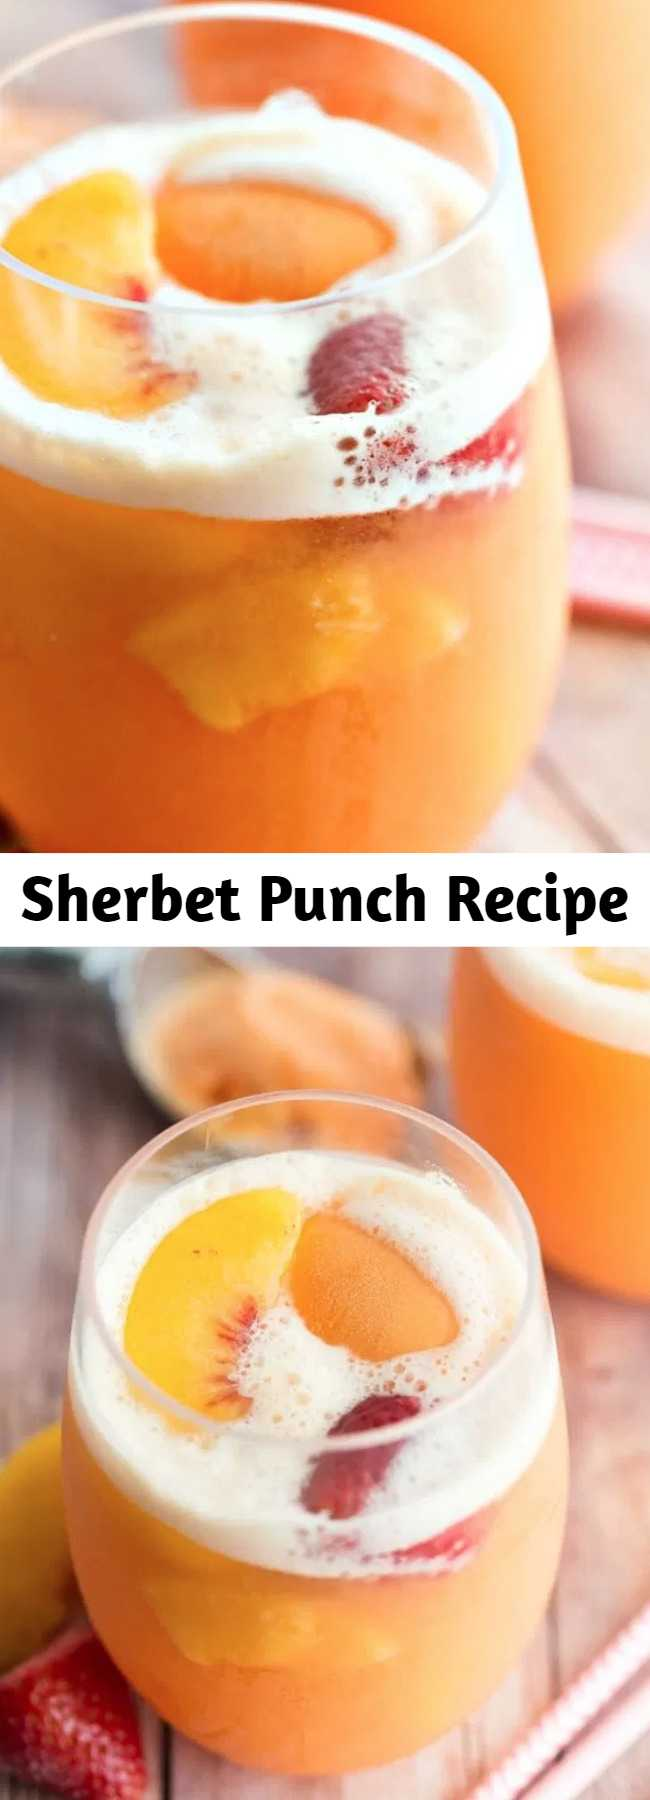 Sherbet Punch Recipe - Sherbet punch made with ginger ale, white grape juice, peaches, and strawberries is the best punch recipe ever! Perfect party punch for your next baby shower, wedding shower, summer party, or random Tuesday afternoon!